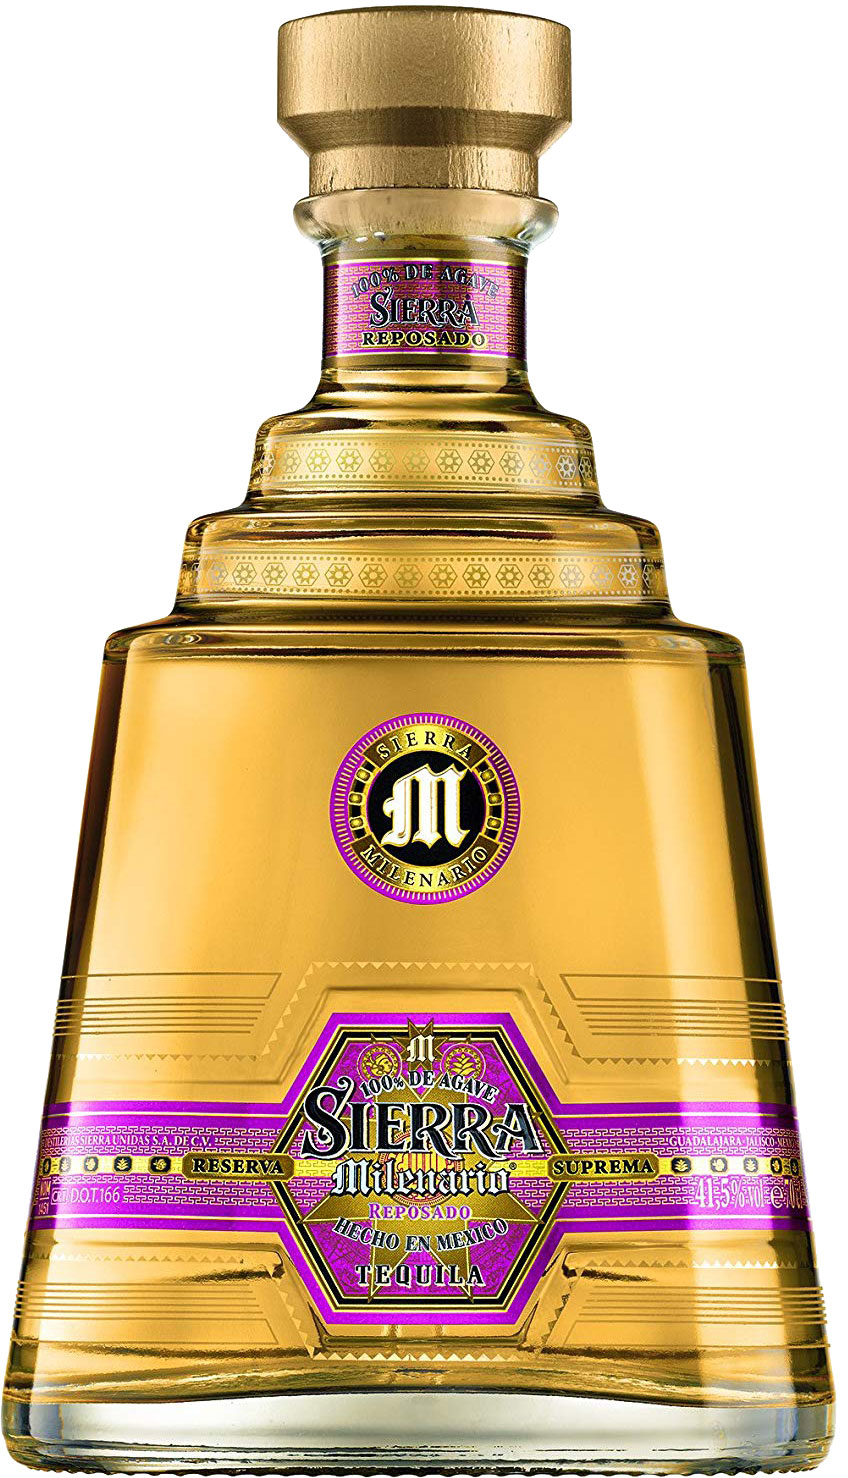 Sierra Milenario - Reposado 70cl Bottle